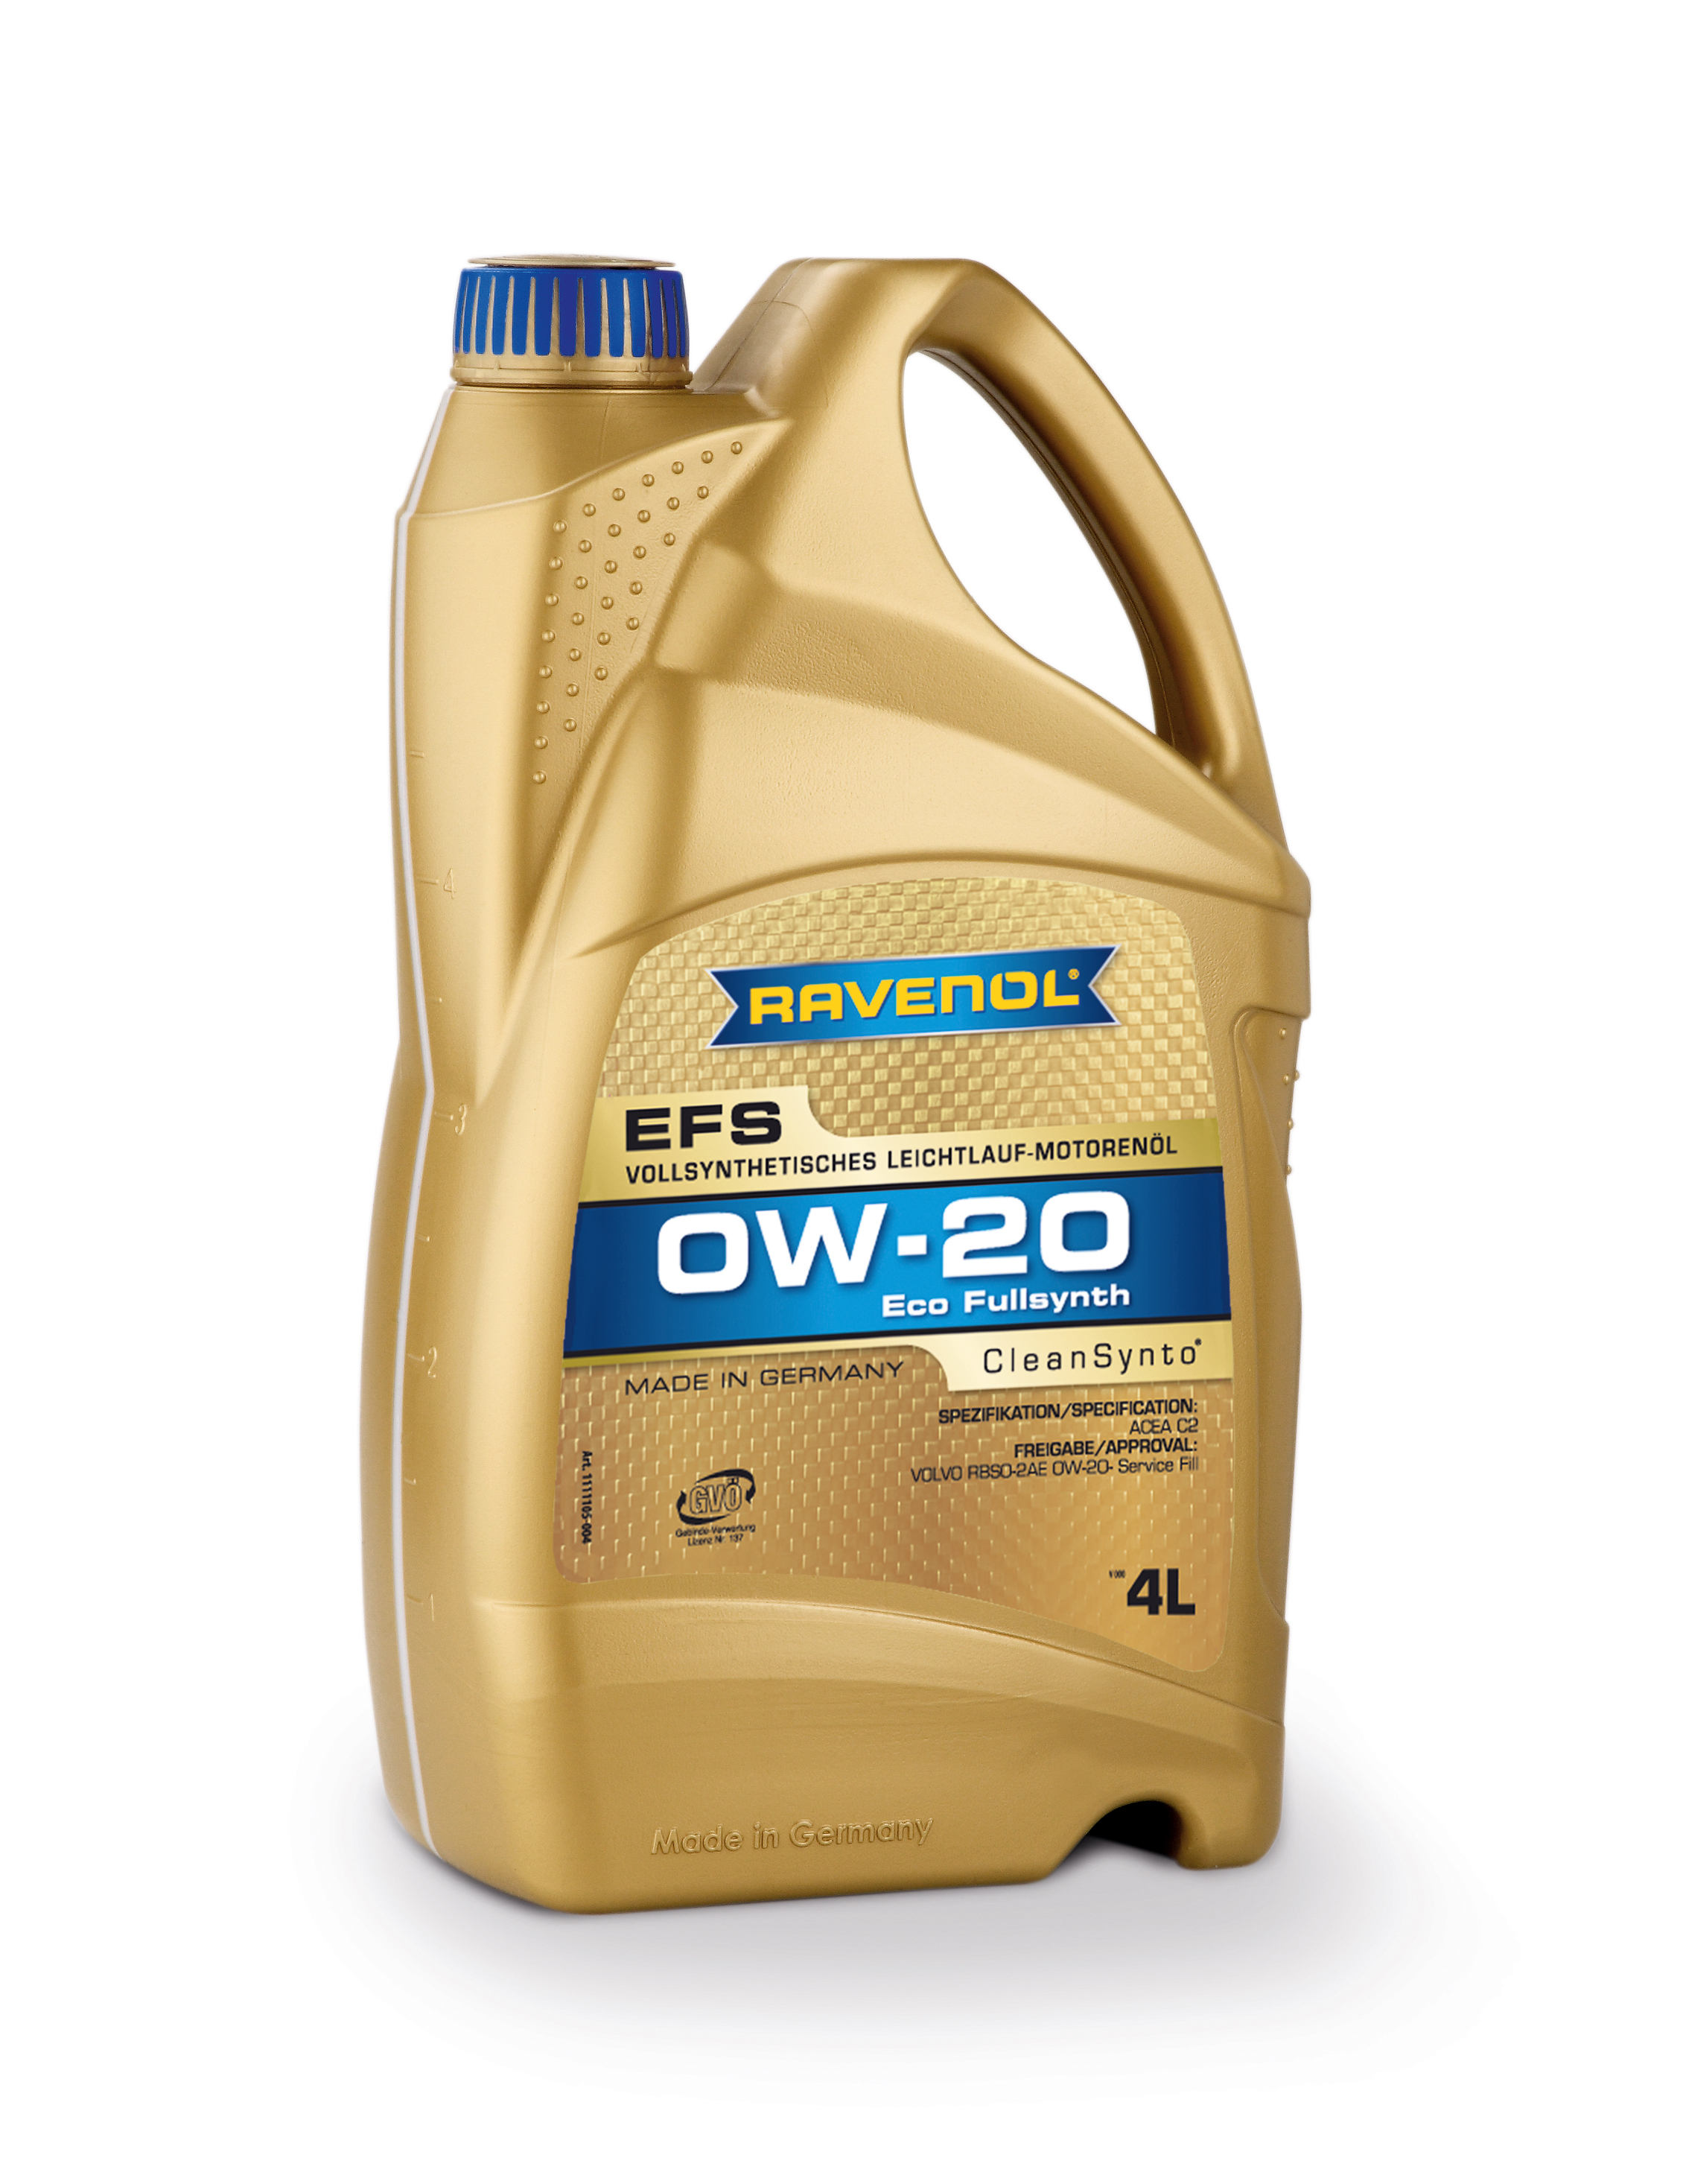 Ravenol EFS 0w-20 Fully Synthetic 4L